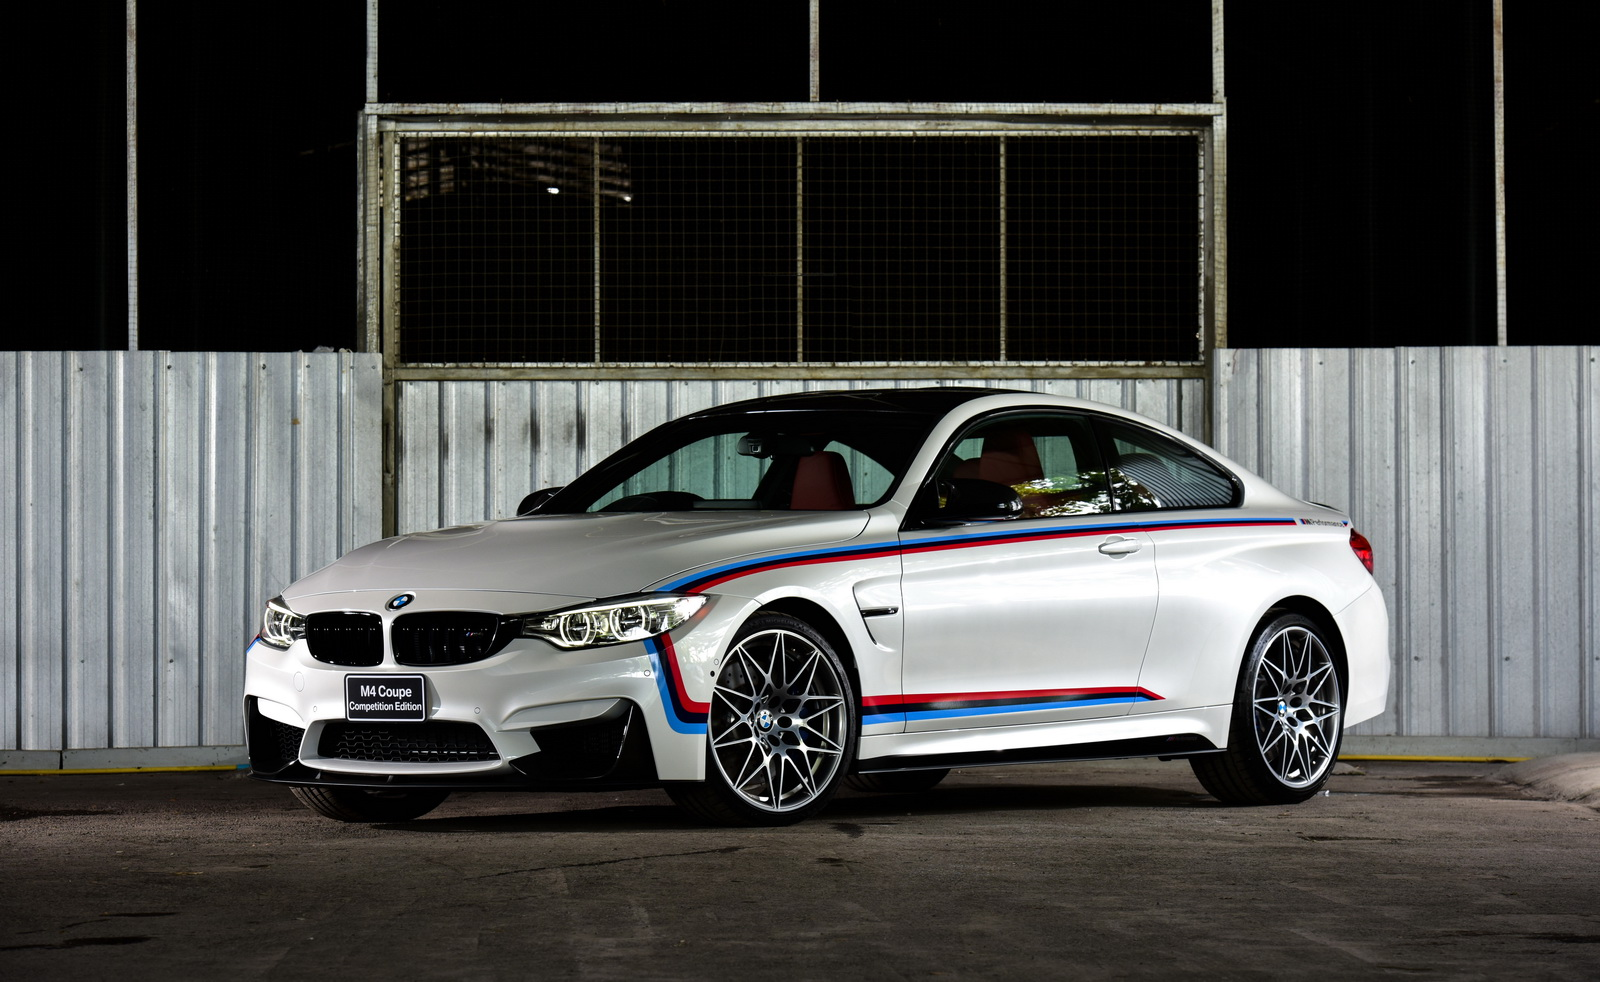 m4-coupe-competition-edition_1